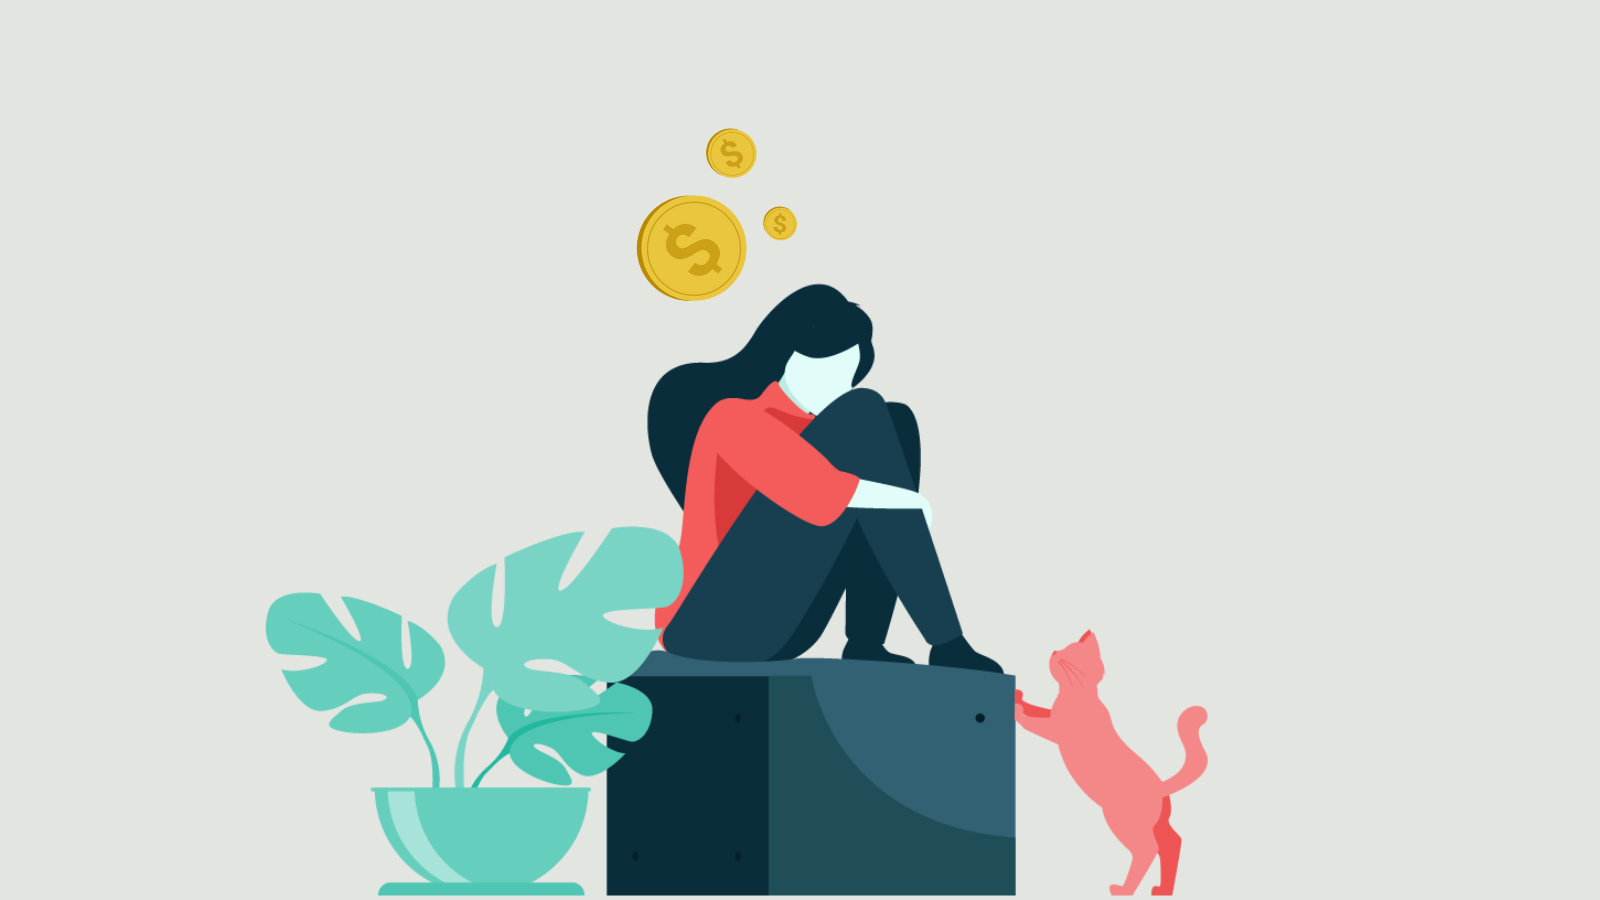 World mental health day resource that covers financial wellbeing links from LearnLux